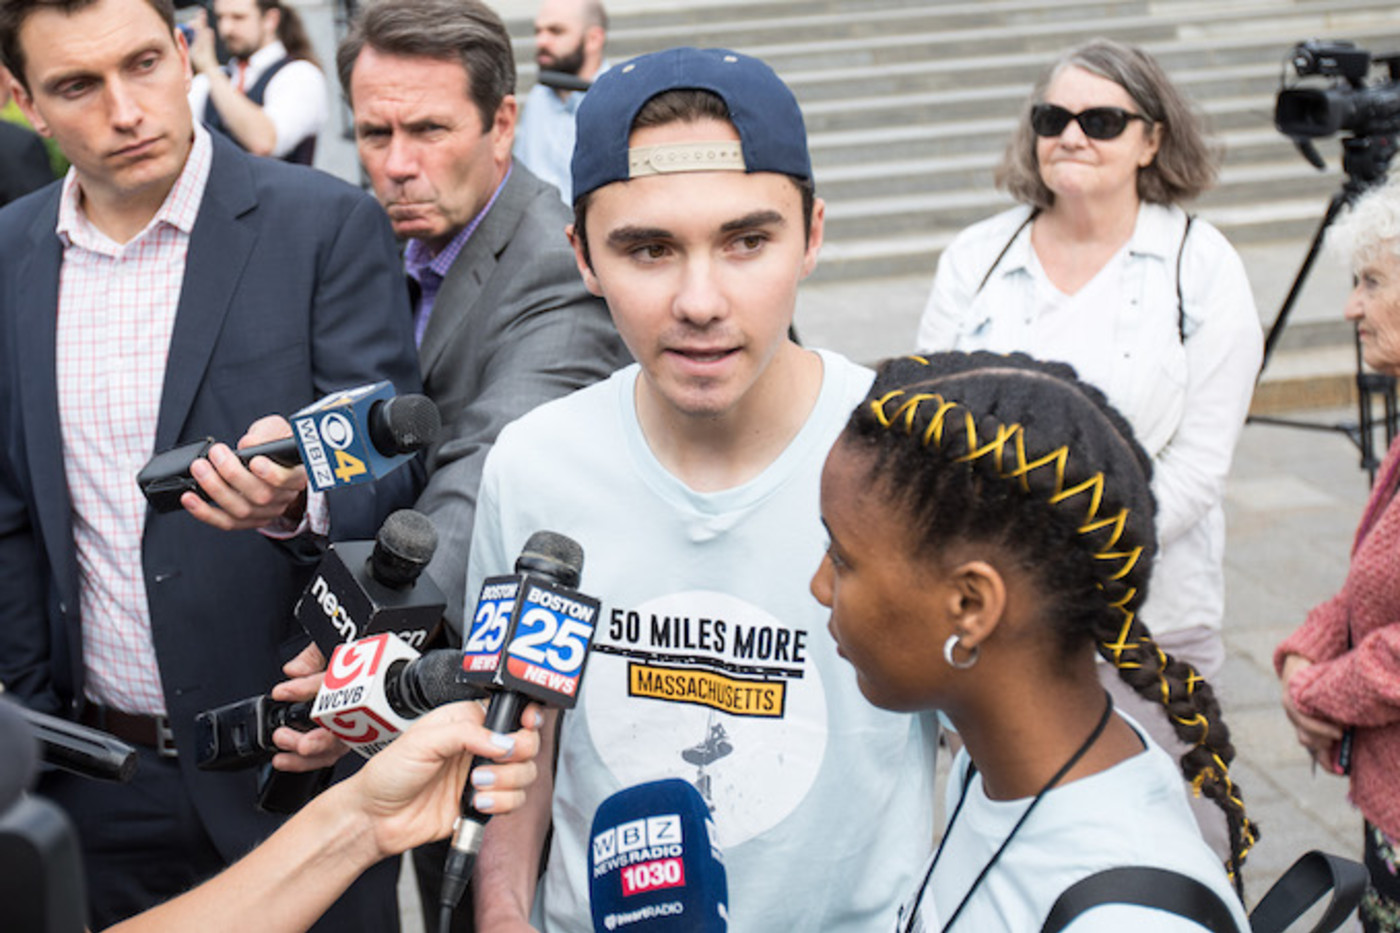 David Hogg at a march in Massachusetts